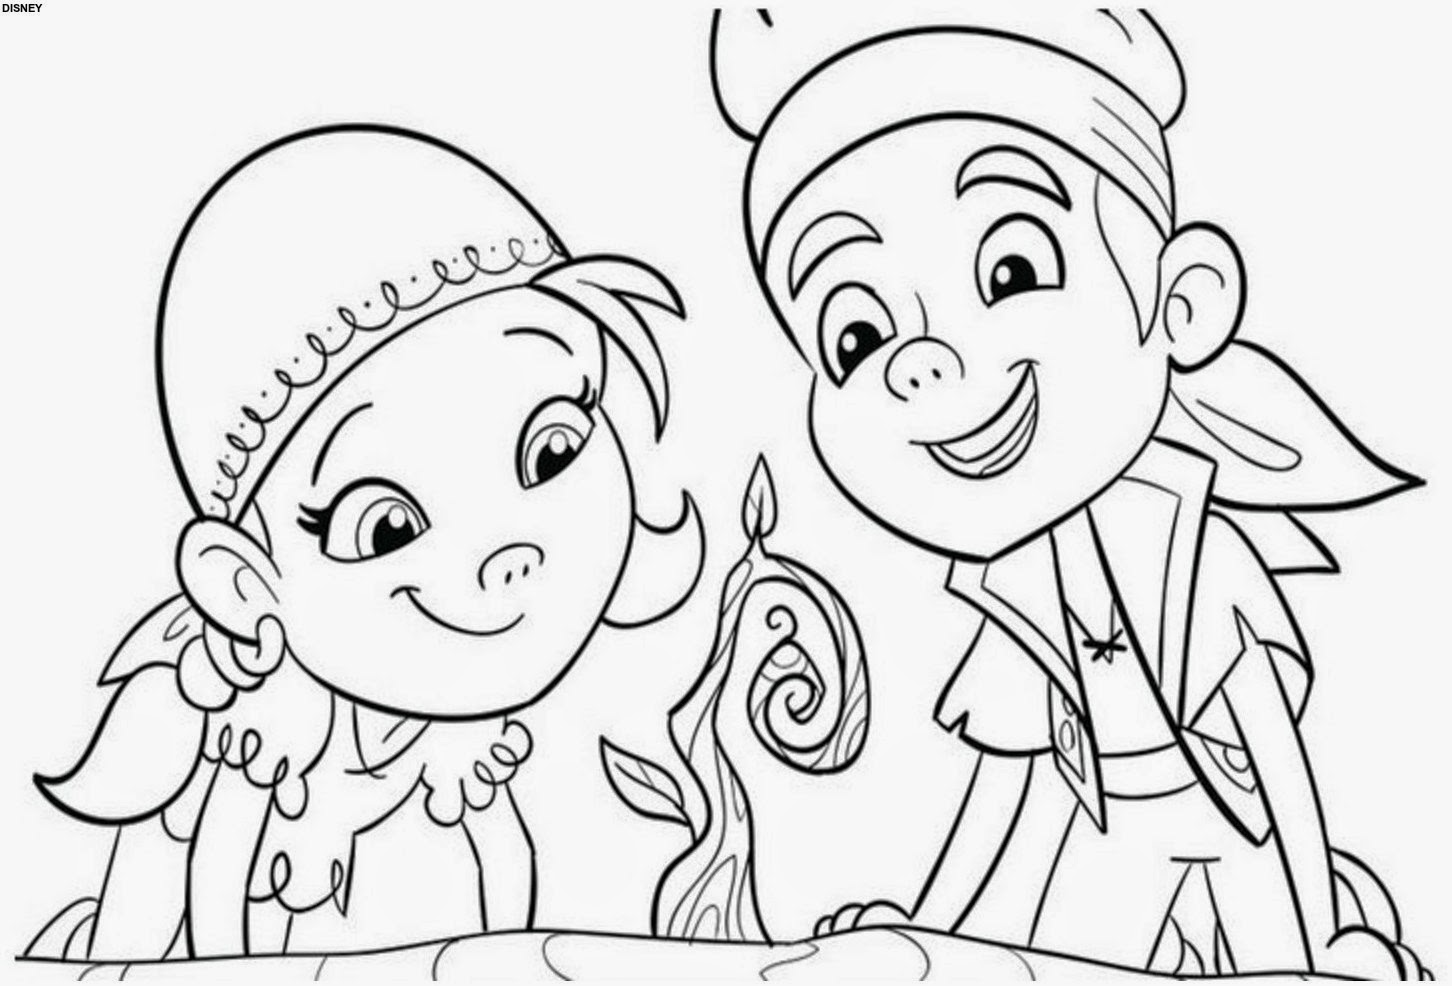 Disney coloring games for girls - Disney Coloring Games For Girls 8